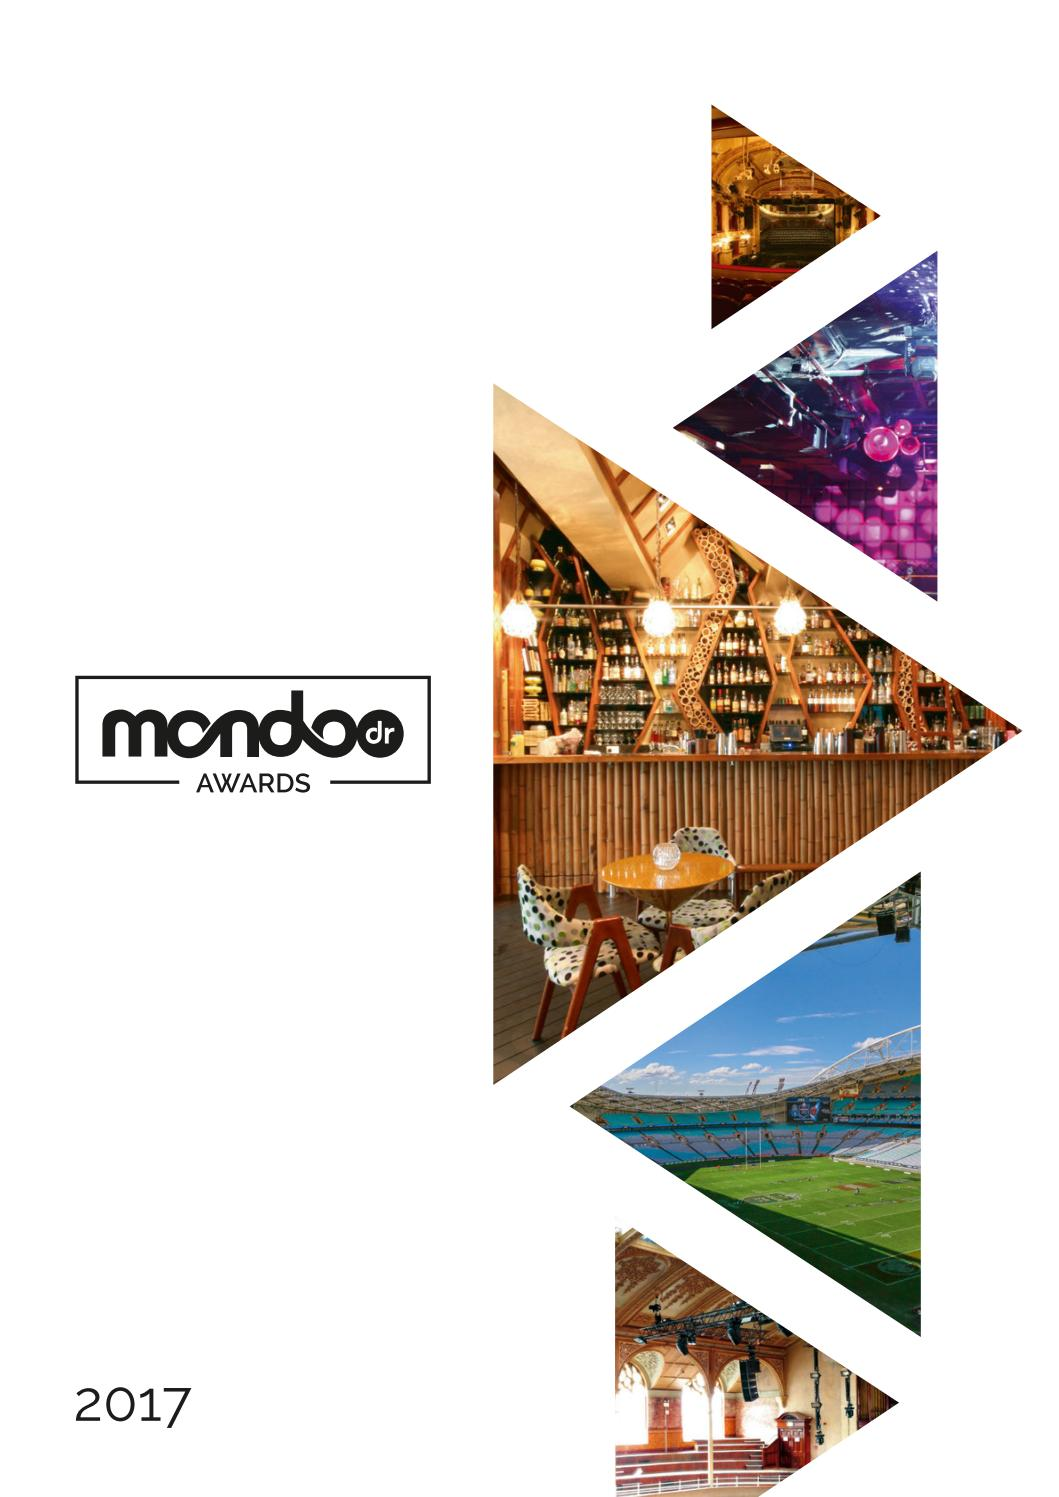 Mondodr Awards 2017 Supplement By Mondiale Publishing Issuu Carbon Microphone A Cross Sectional View B Singlebutton Circuit